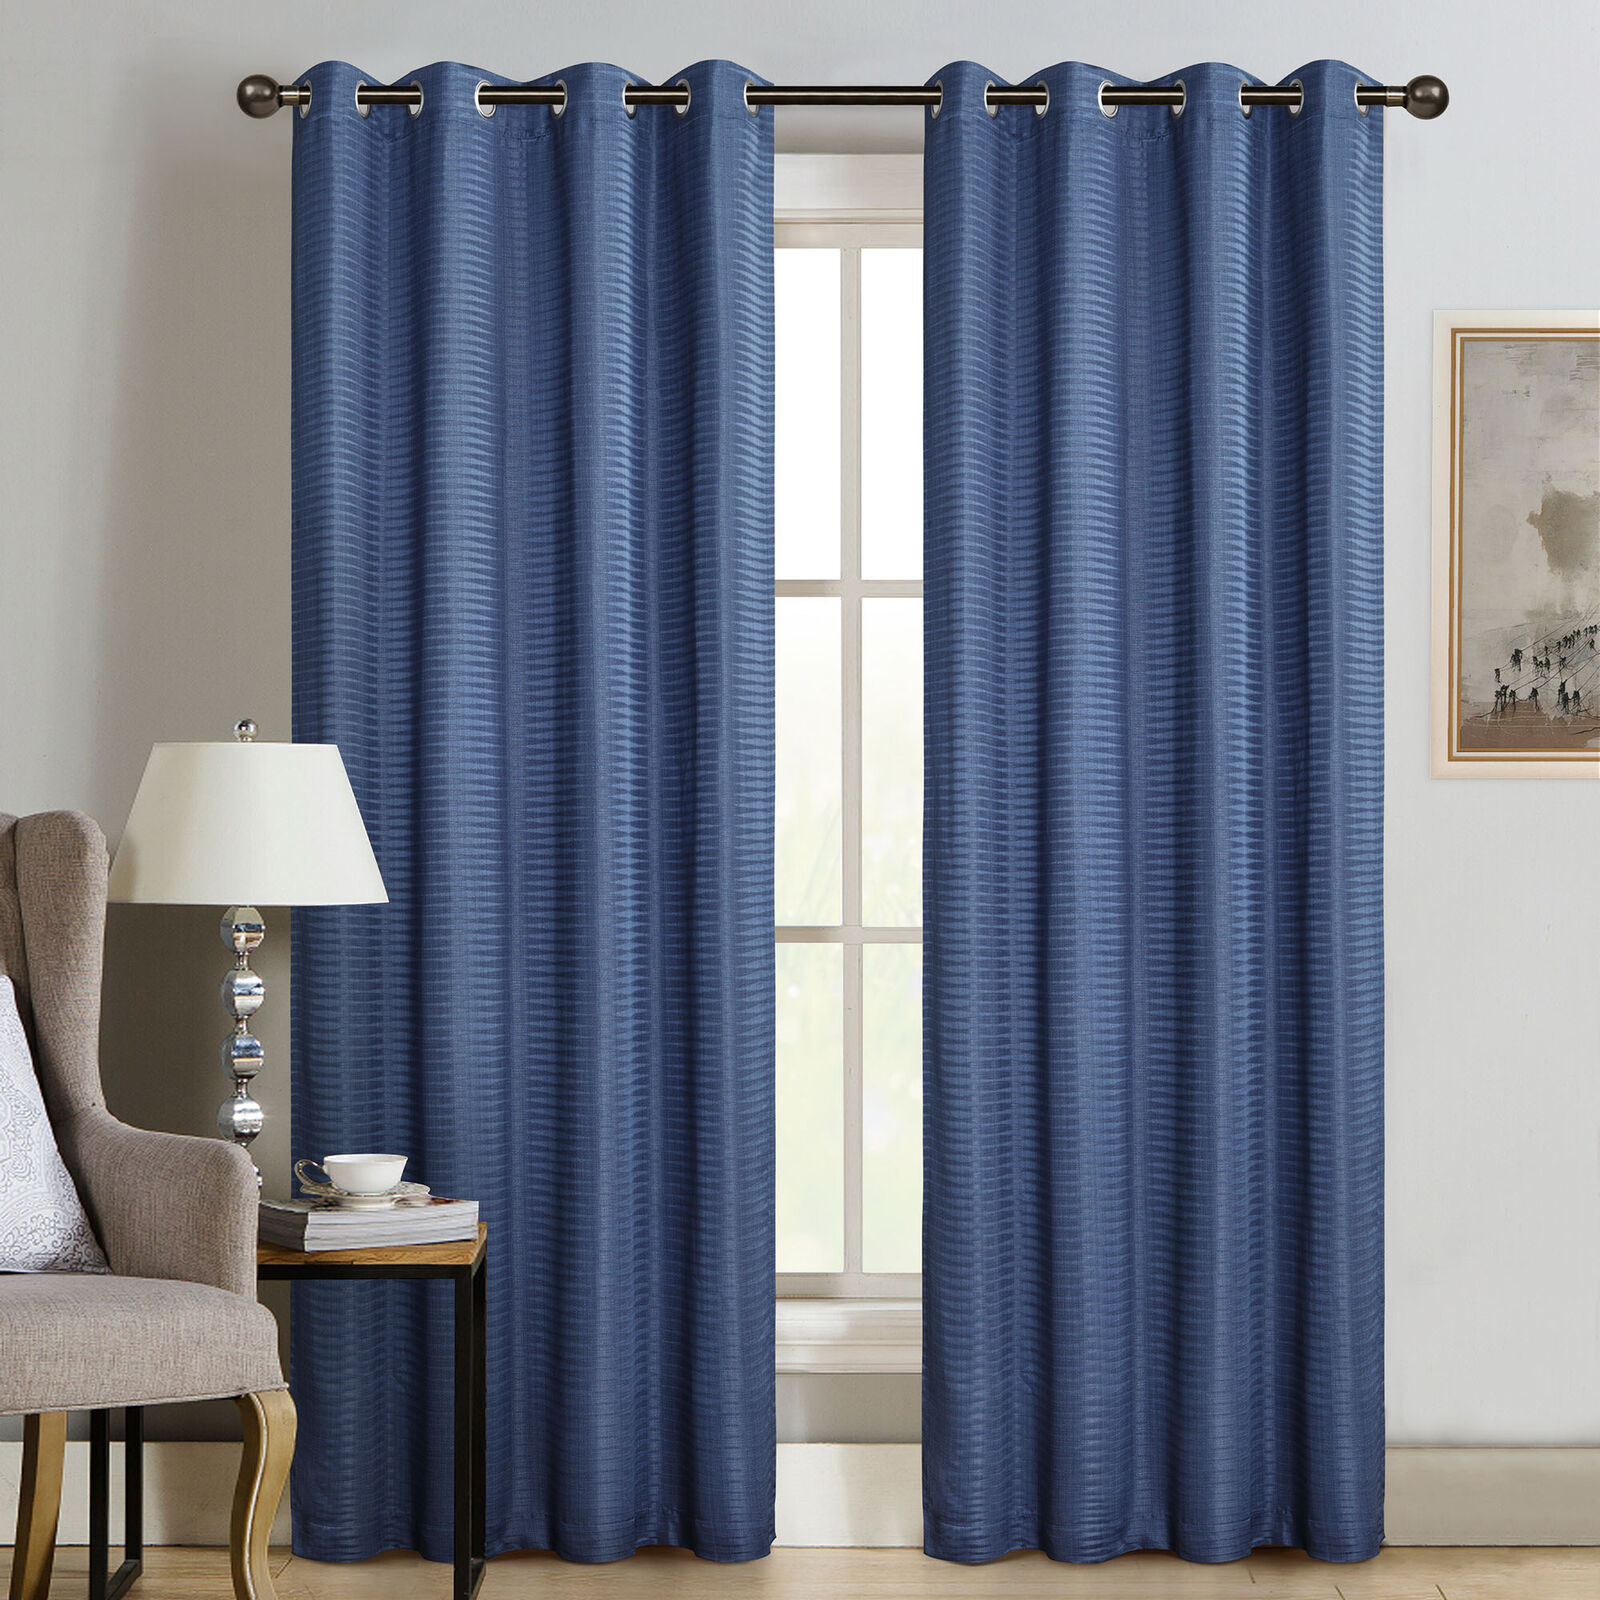 Newport Wave 84 Inch Light Filtering Grommet Top Window Curtain Panel In Blue For Eclipse Newport Blackout Curtain Panels (View 16 of 20)